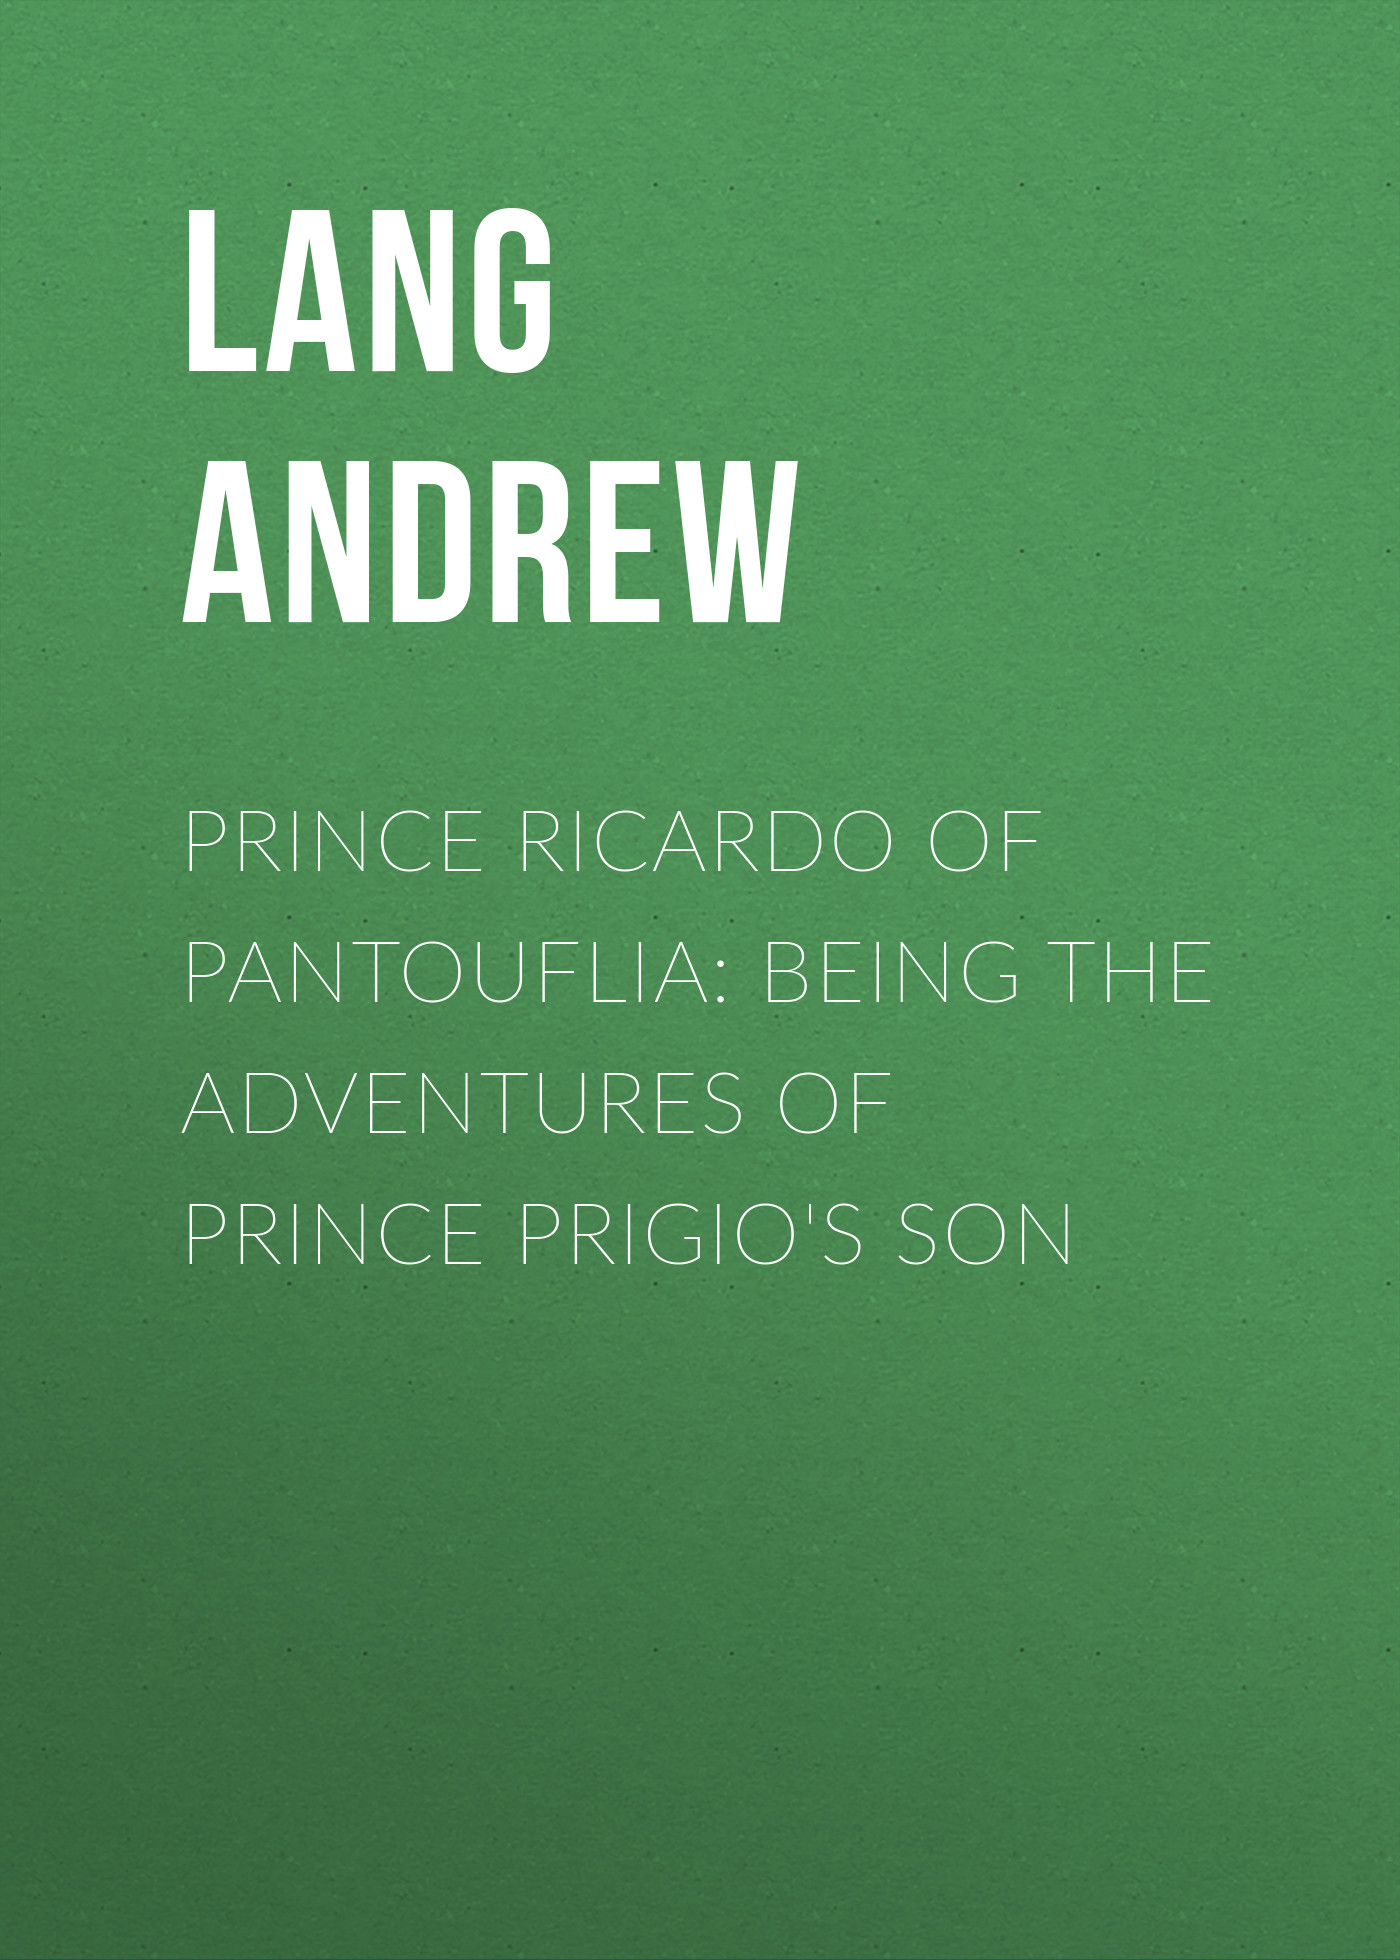 Lang Andrew Prince Ricardo of Pantouflia: Being the Adventures of Prince Prigio's Son браслет prince special promotion the art of curetm safety knotted cherry